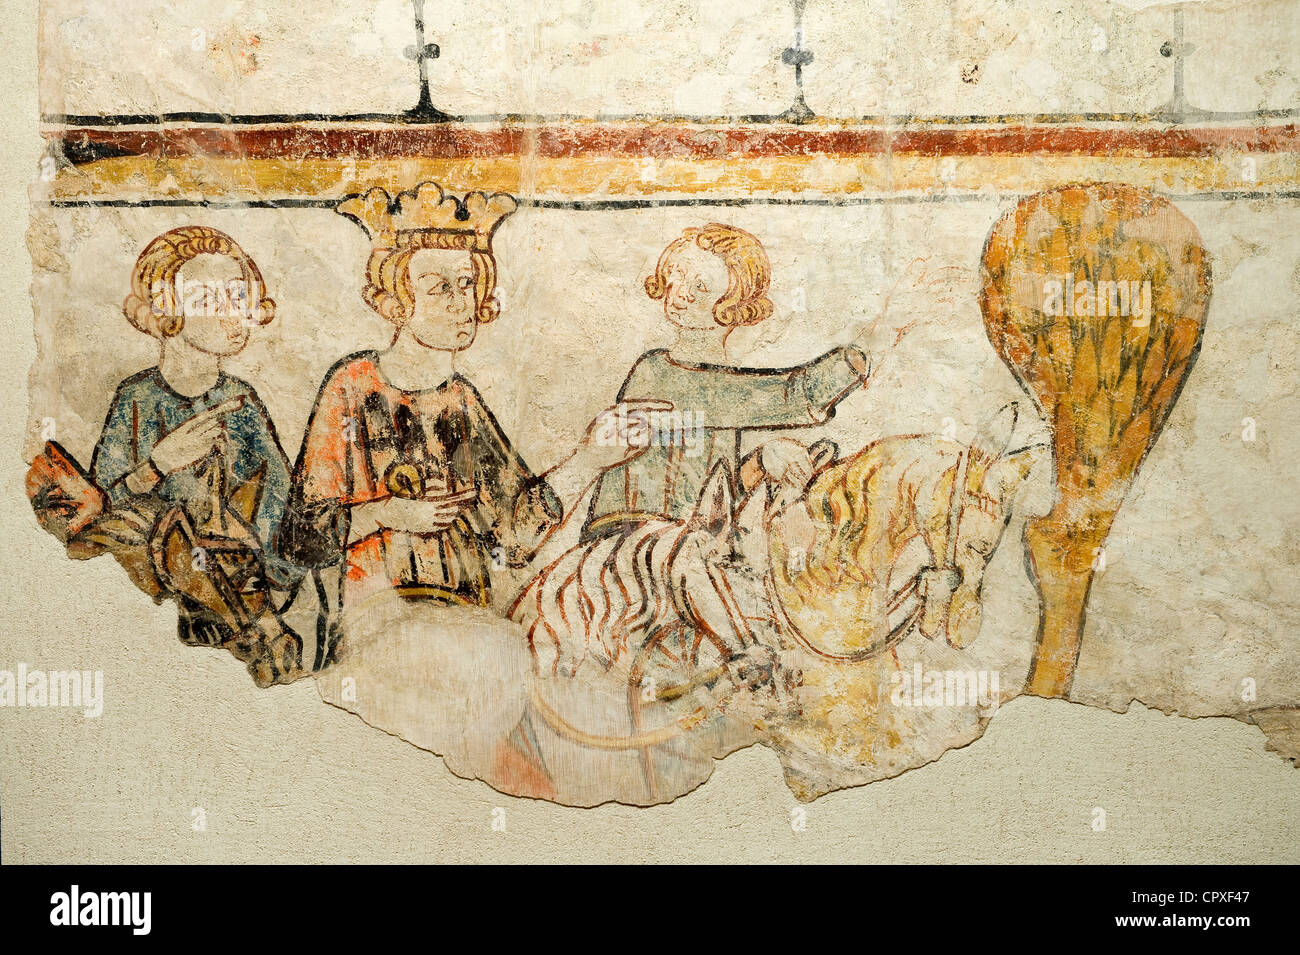 medieval 13th century wall painting stock photos medieval 13th century wall painting stock. Black Bedroom Furniture Sets. Home Design Ideas